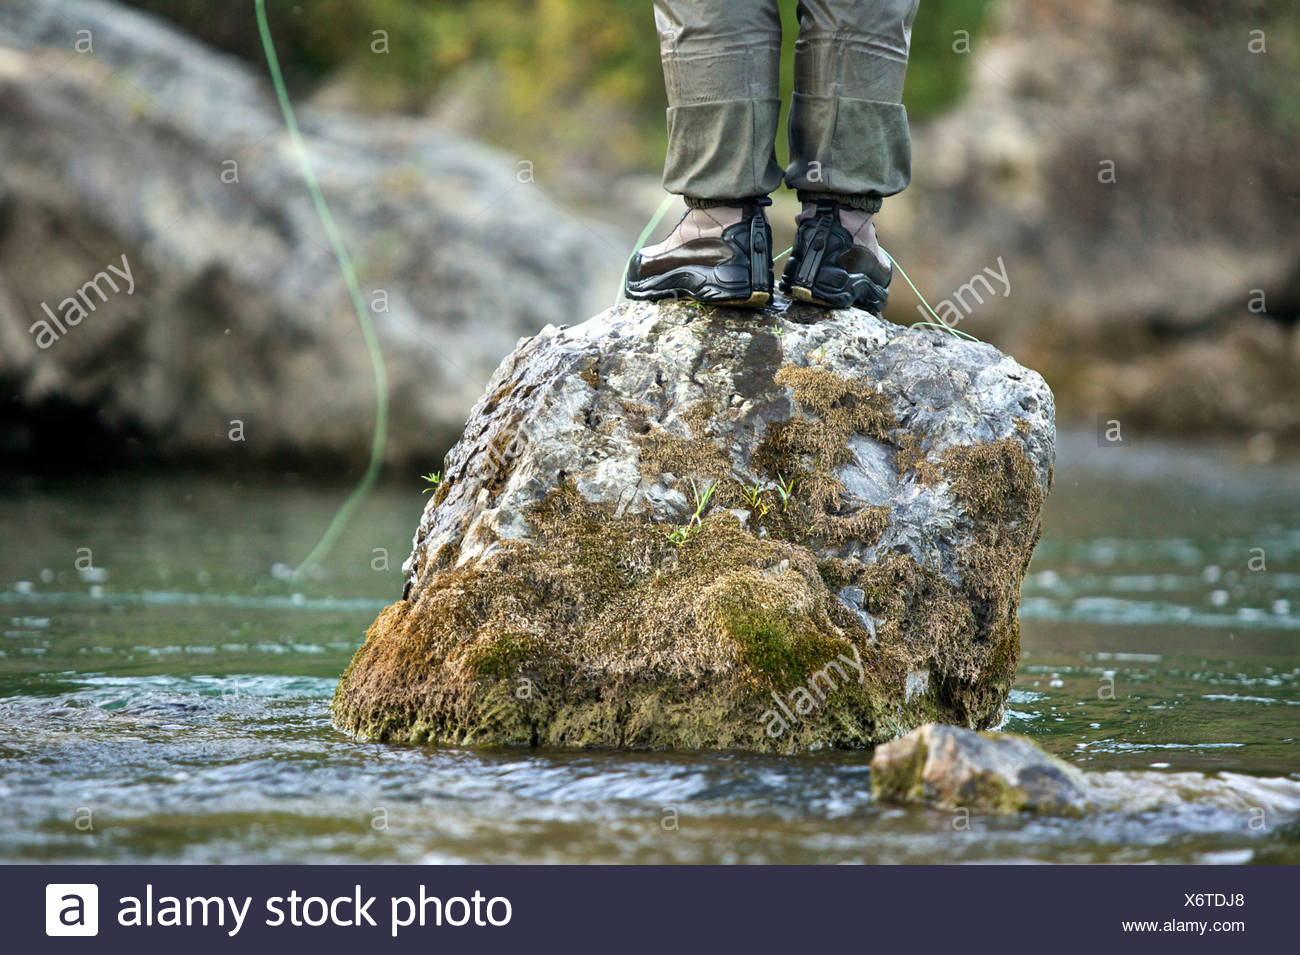 A man fishes from a rock on a river in Wyoming. - Stock Image